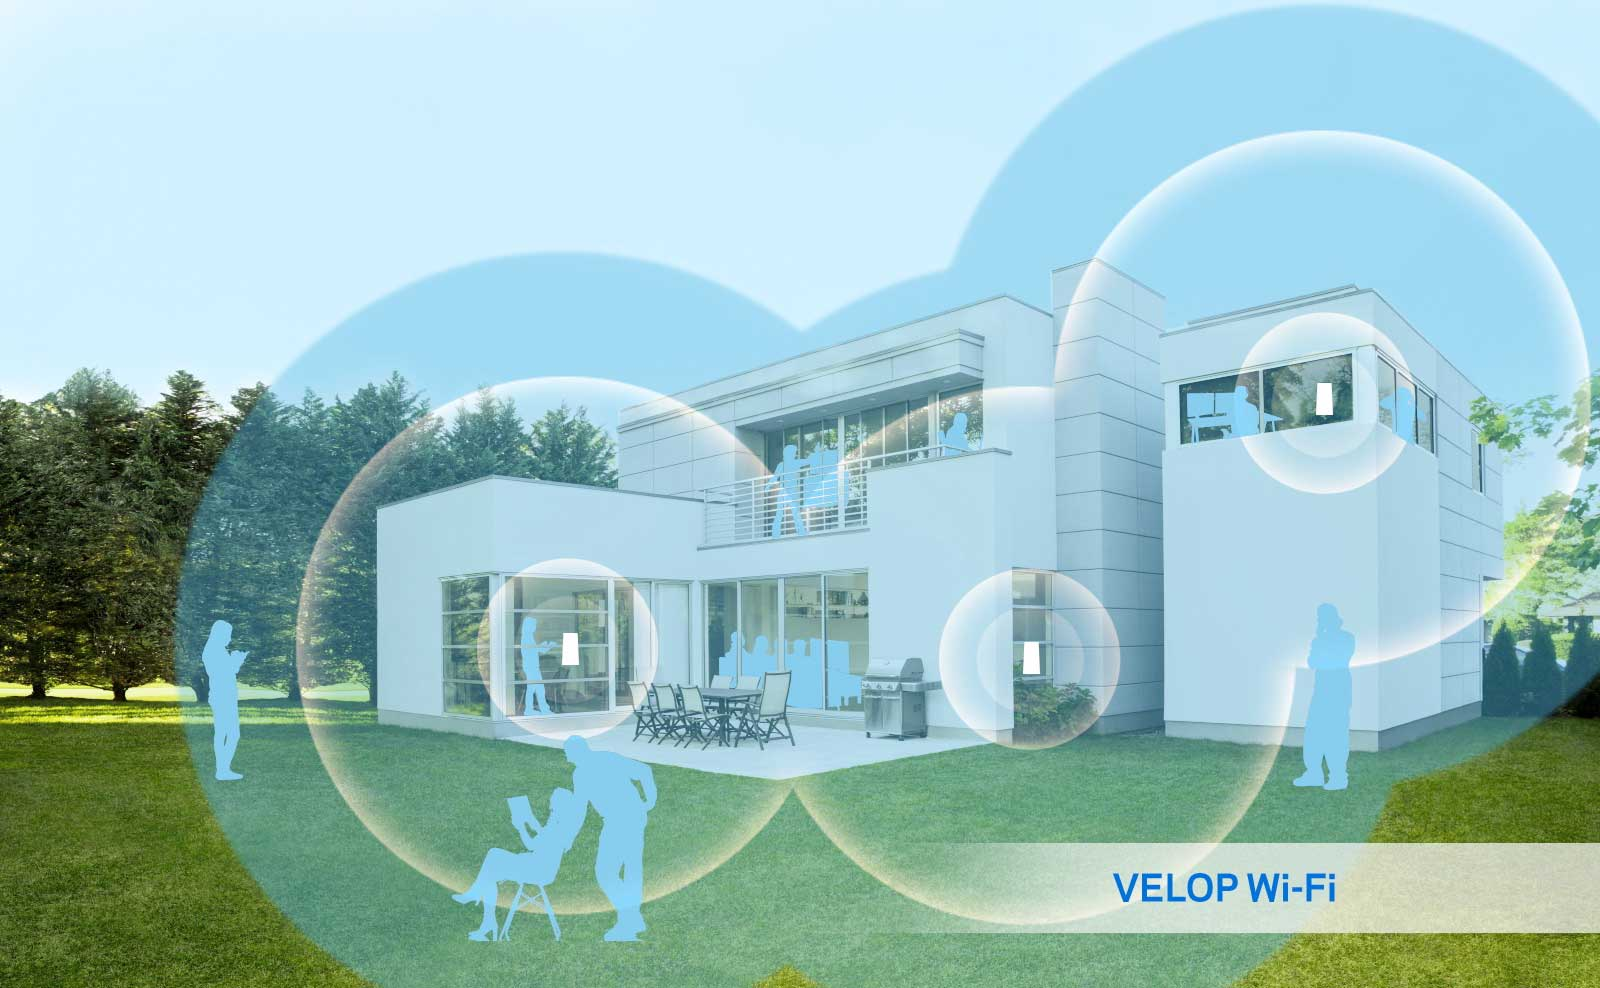 Velop Whole-Home Mesh Wi-Fi